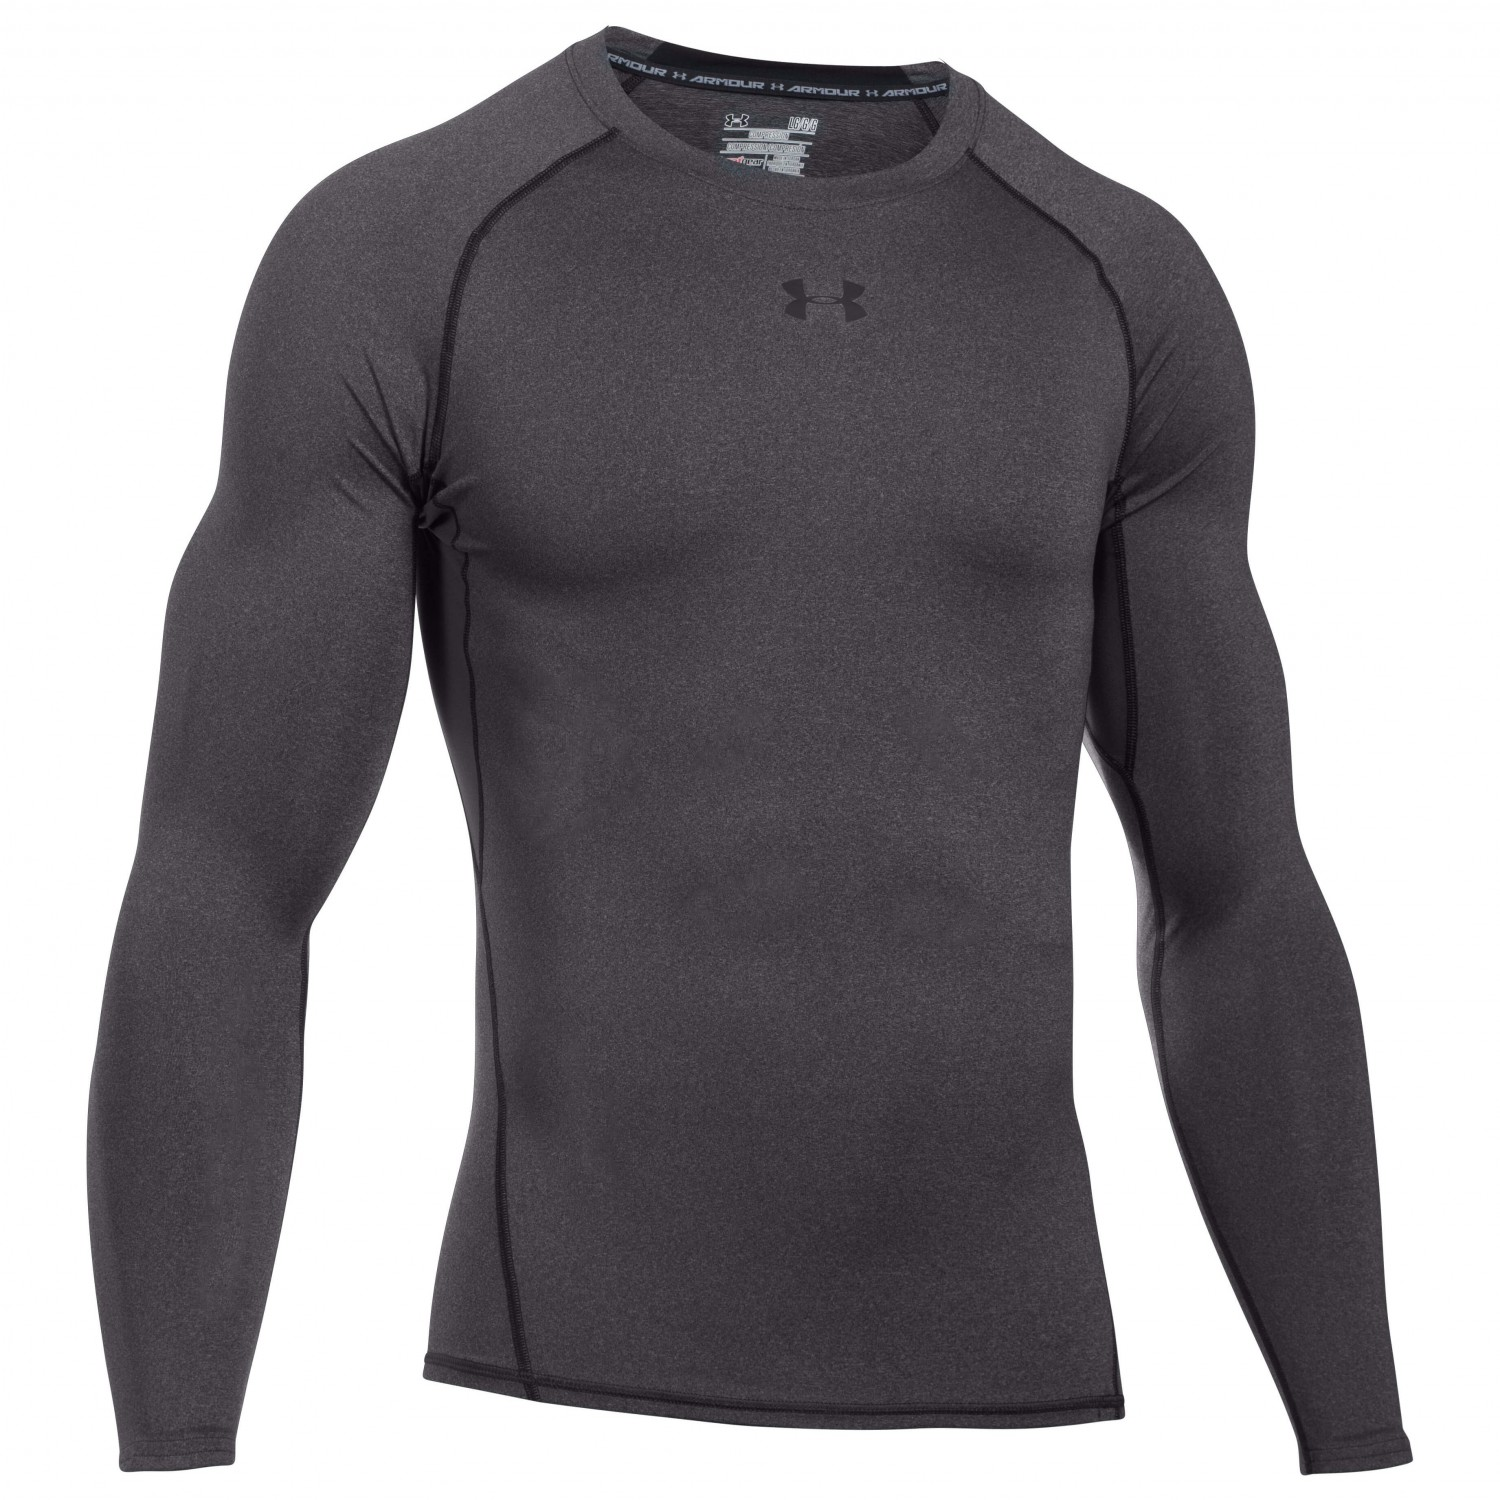 b8e8397ff3ce86 Under Armour UA HG Armour L S - Compression Base Layer Men s